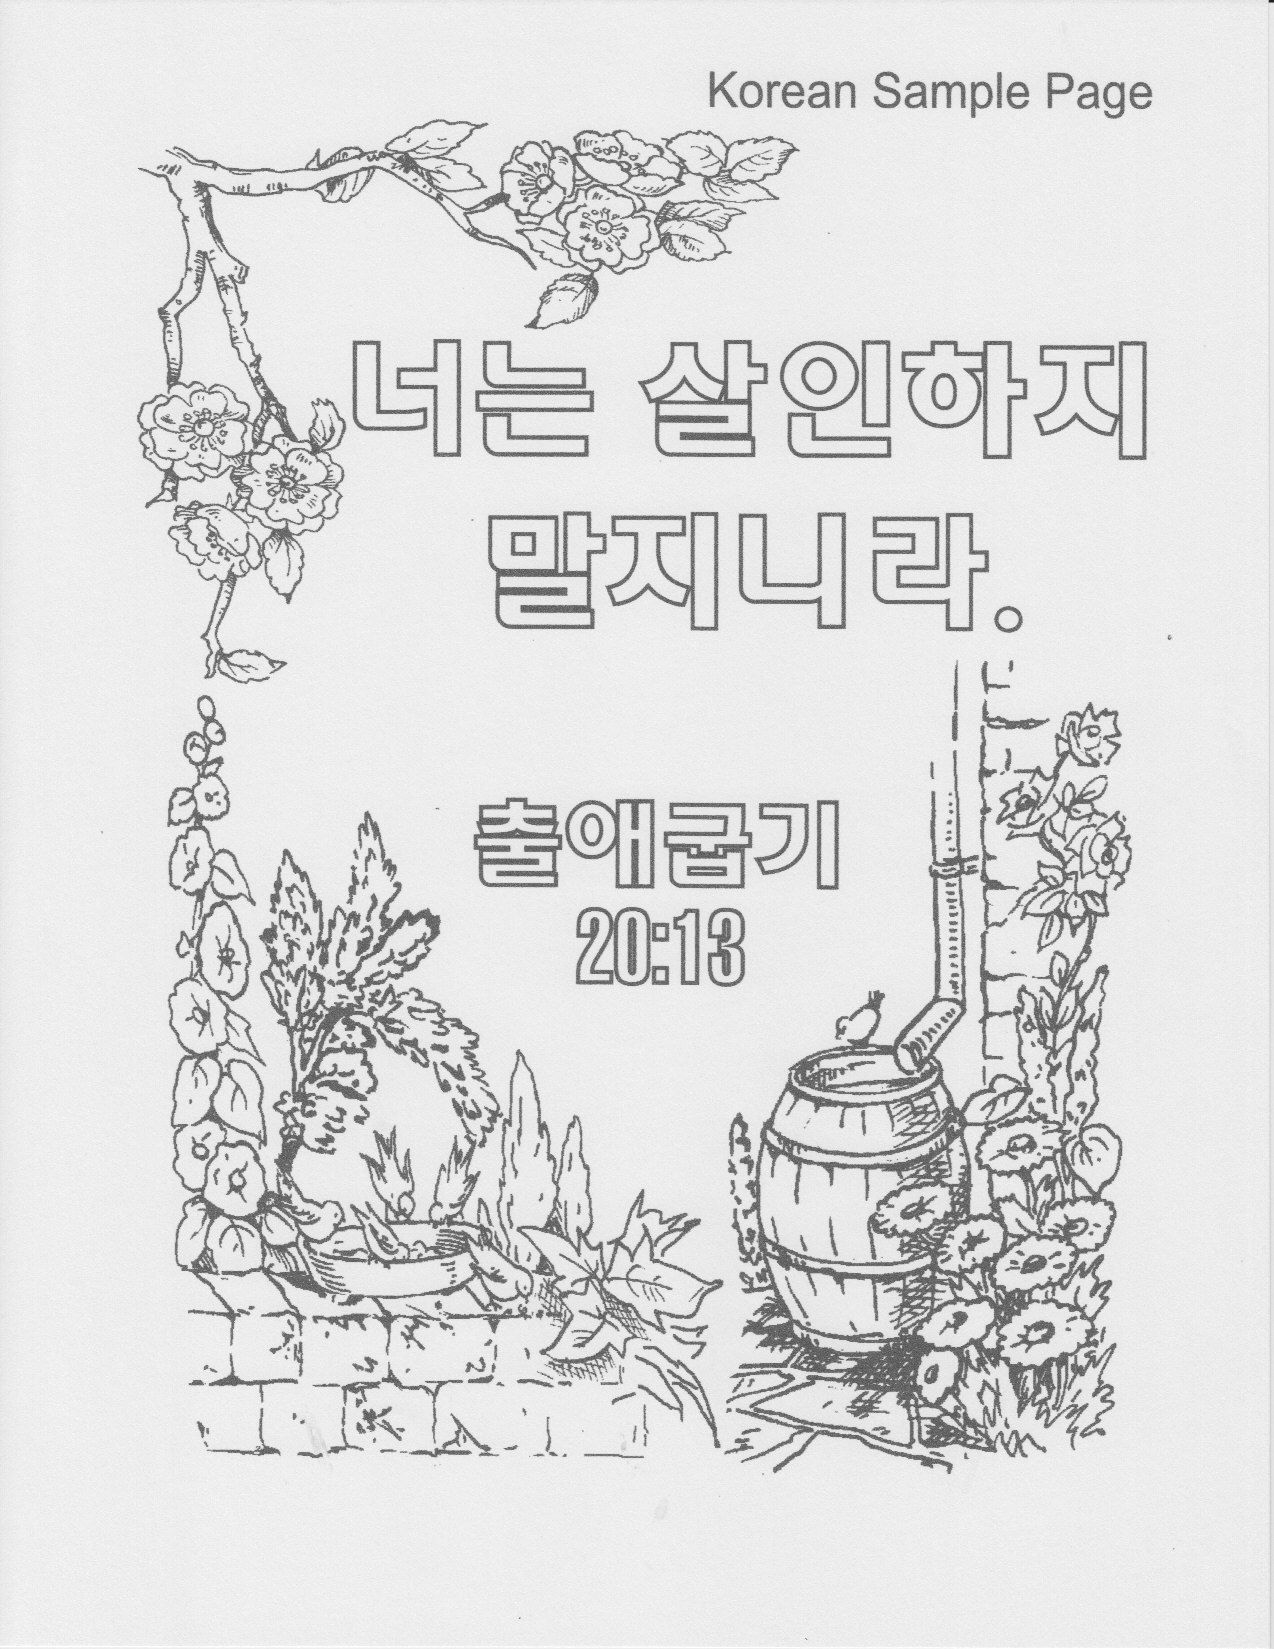 Thanksgiving coloring pages with bible verses - Korea Coloring Page Korean Bible Verse Coloring Book